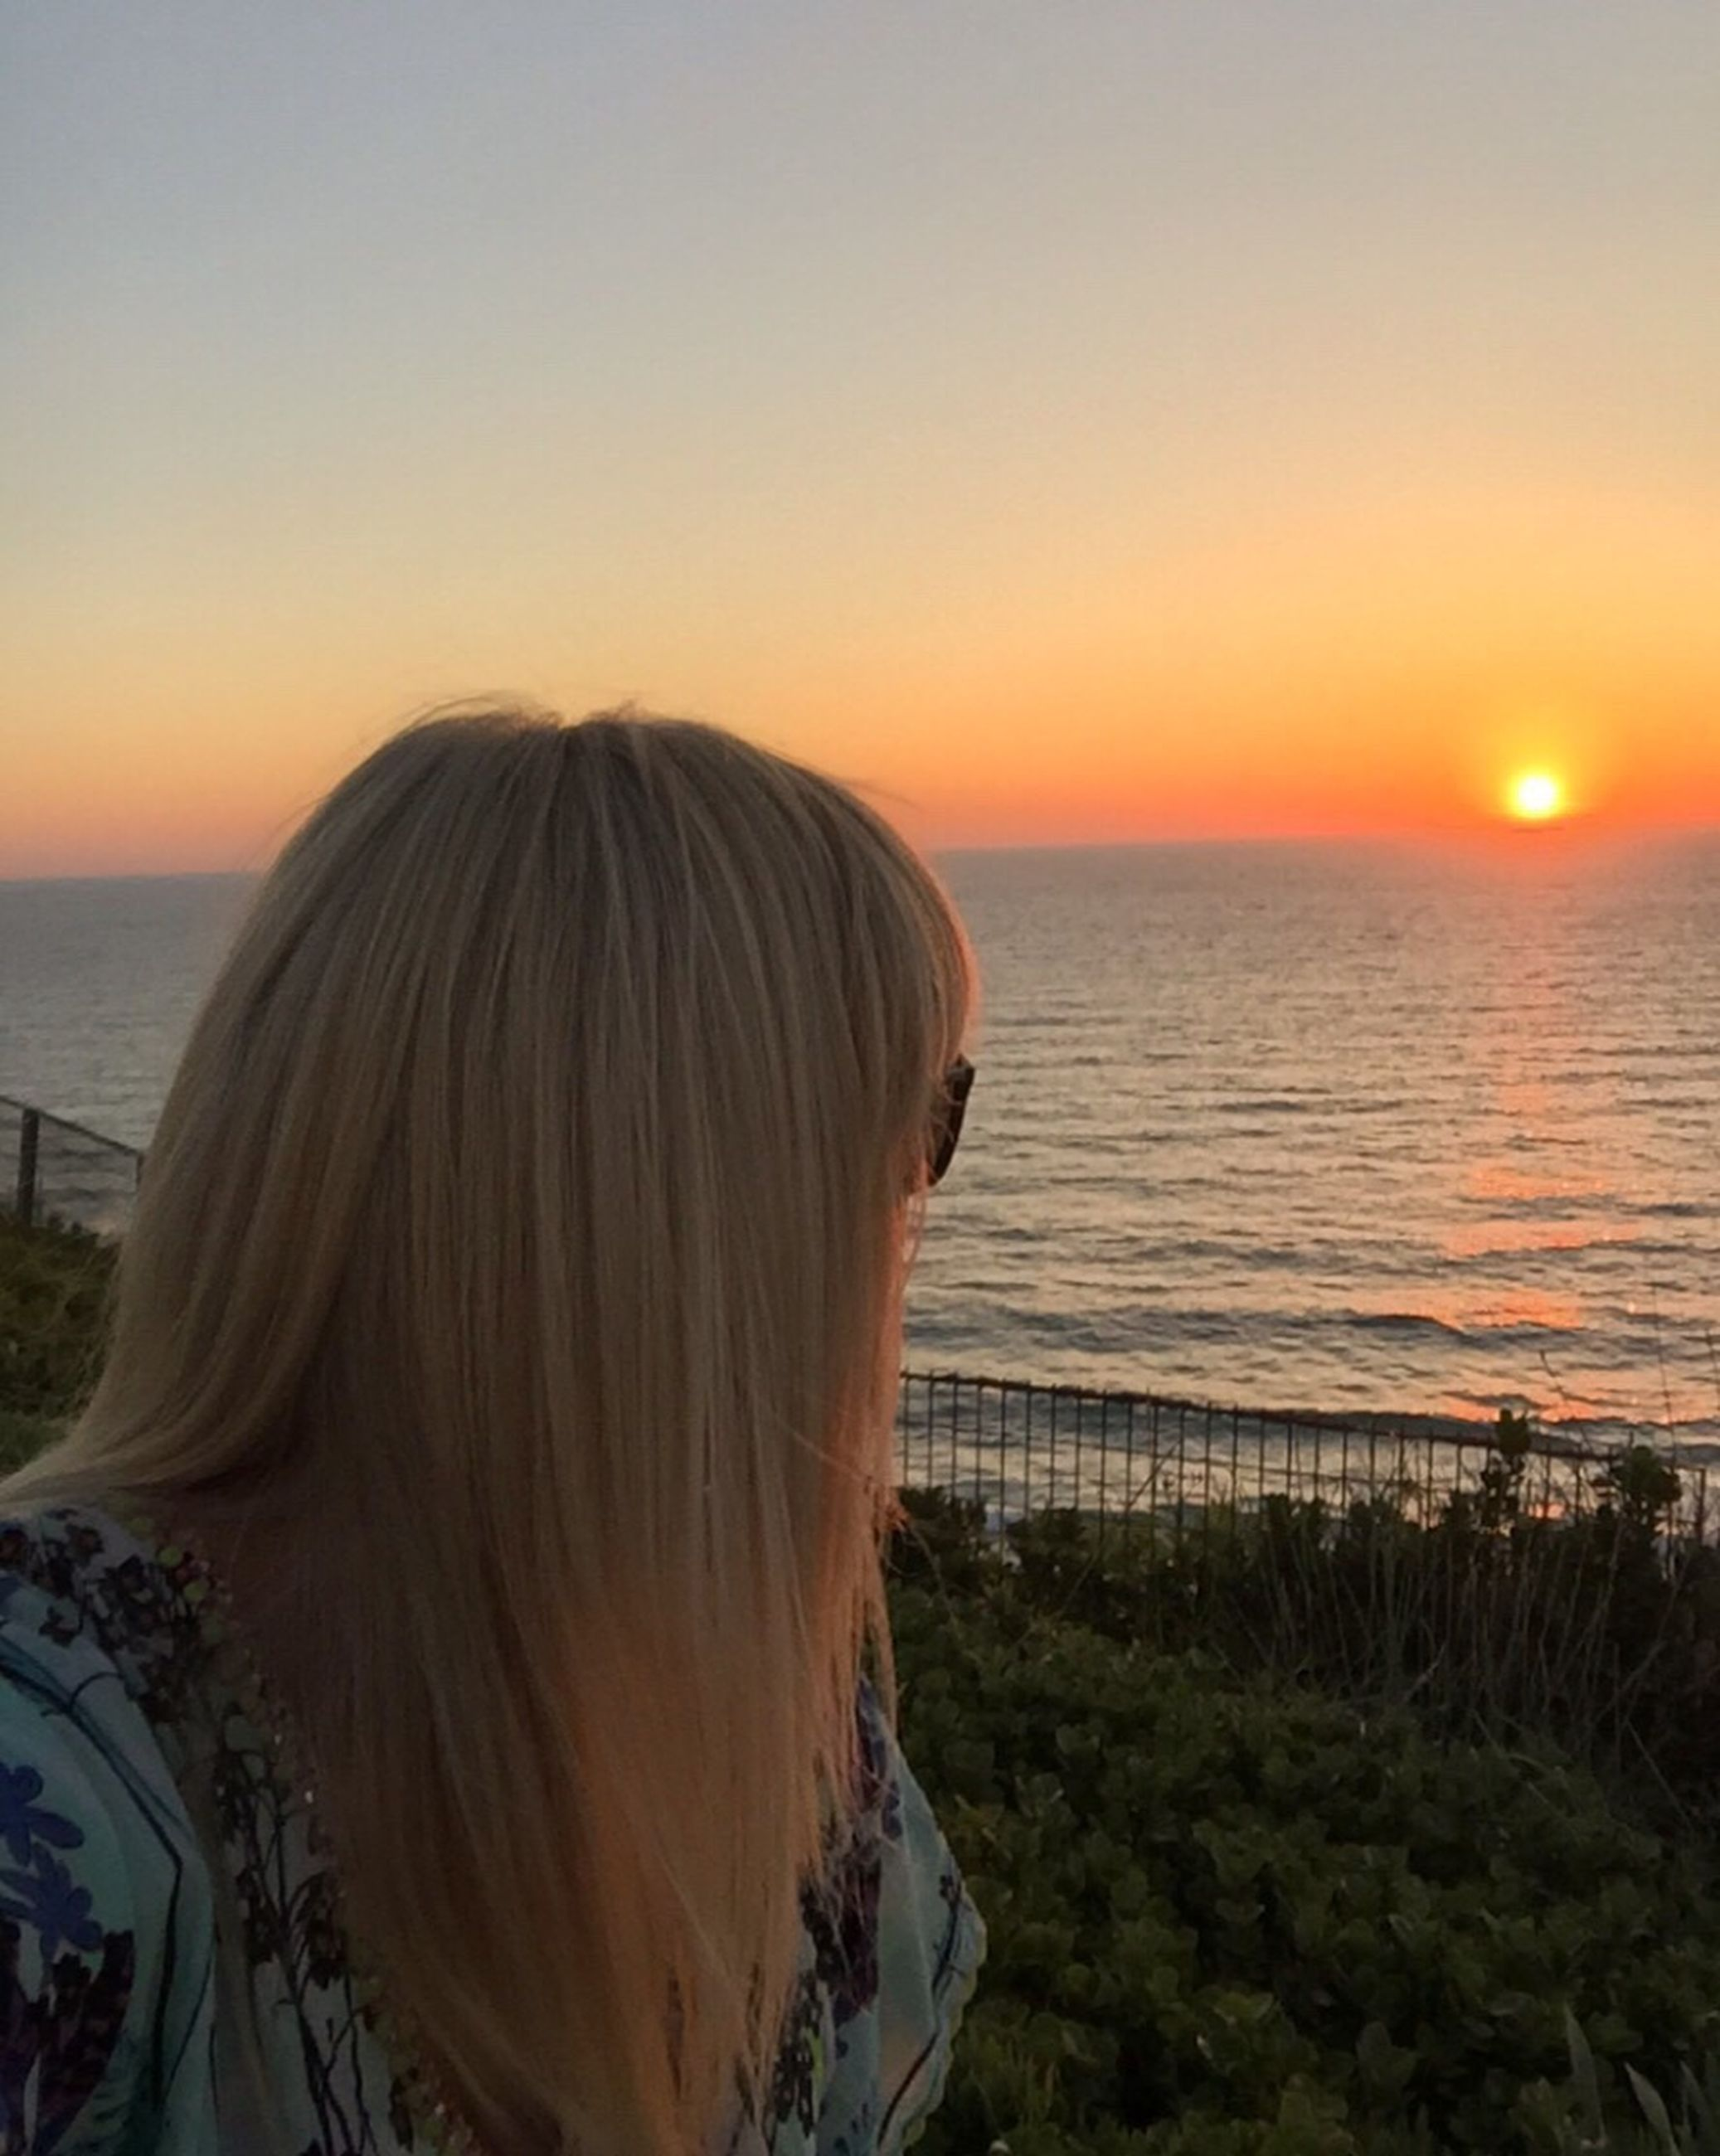 sunset, sea, rear view, horizon over water, water, one person, scenics, clear sky, real people, nature, tranquil scene, beauty in nature, idyllic, sky, tranquility, outdoors, beach, sun, women, leisure activity, lifestyles, day, people